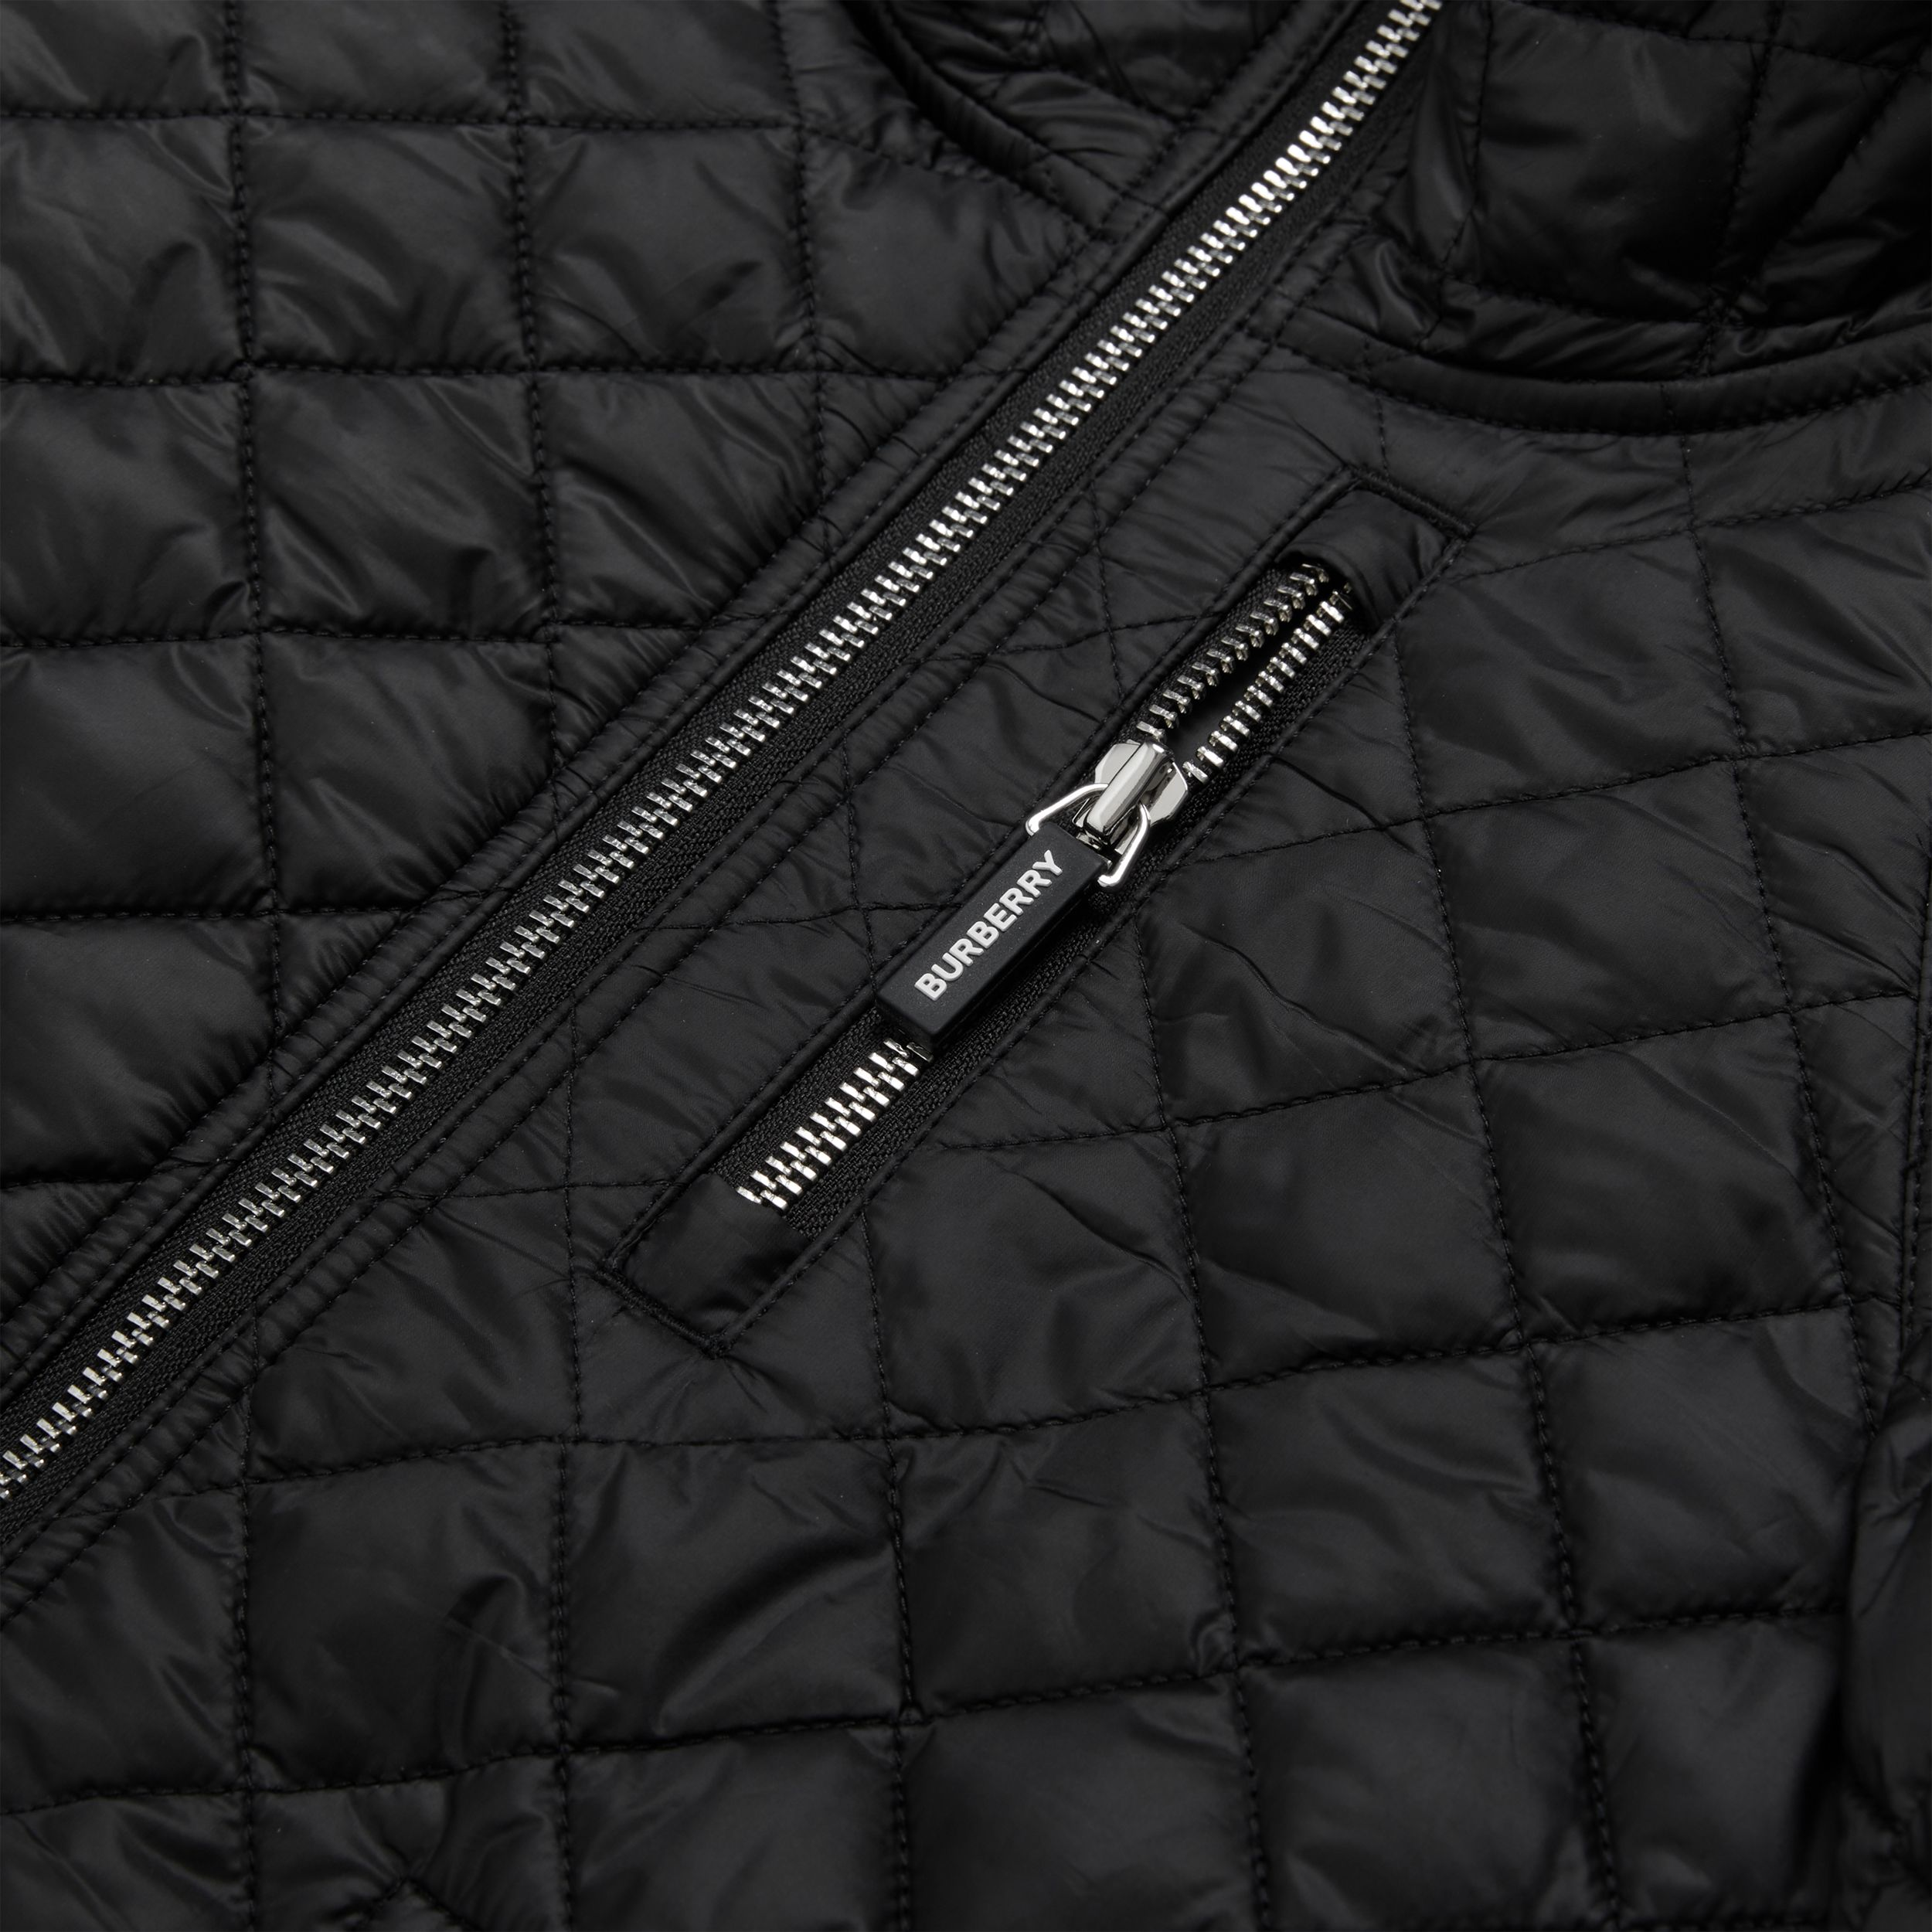 Diamond Quilted Hooded Coat in Black | Burberry - 2